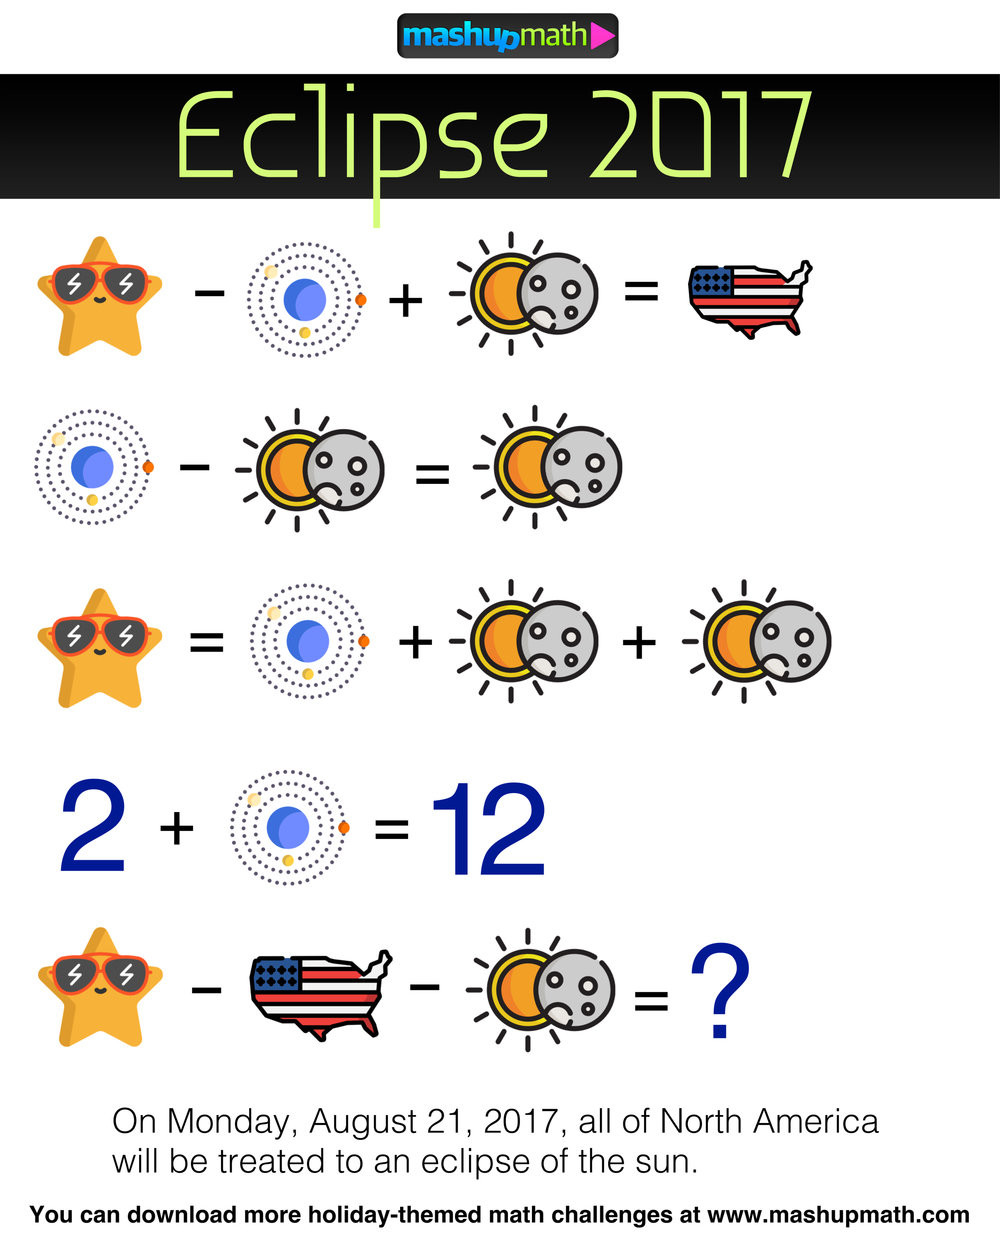 are you ready for this eclipse 2017 learning activity